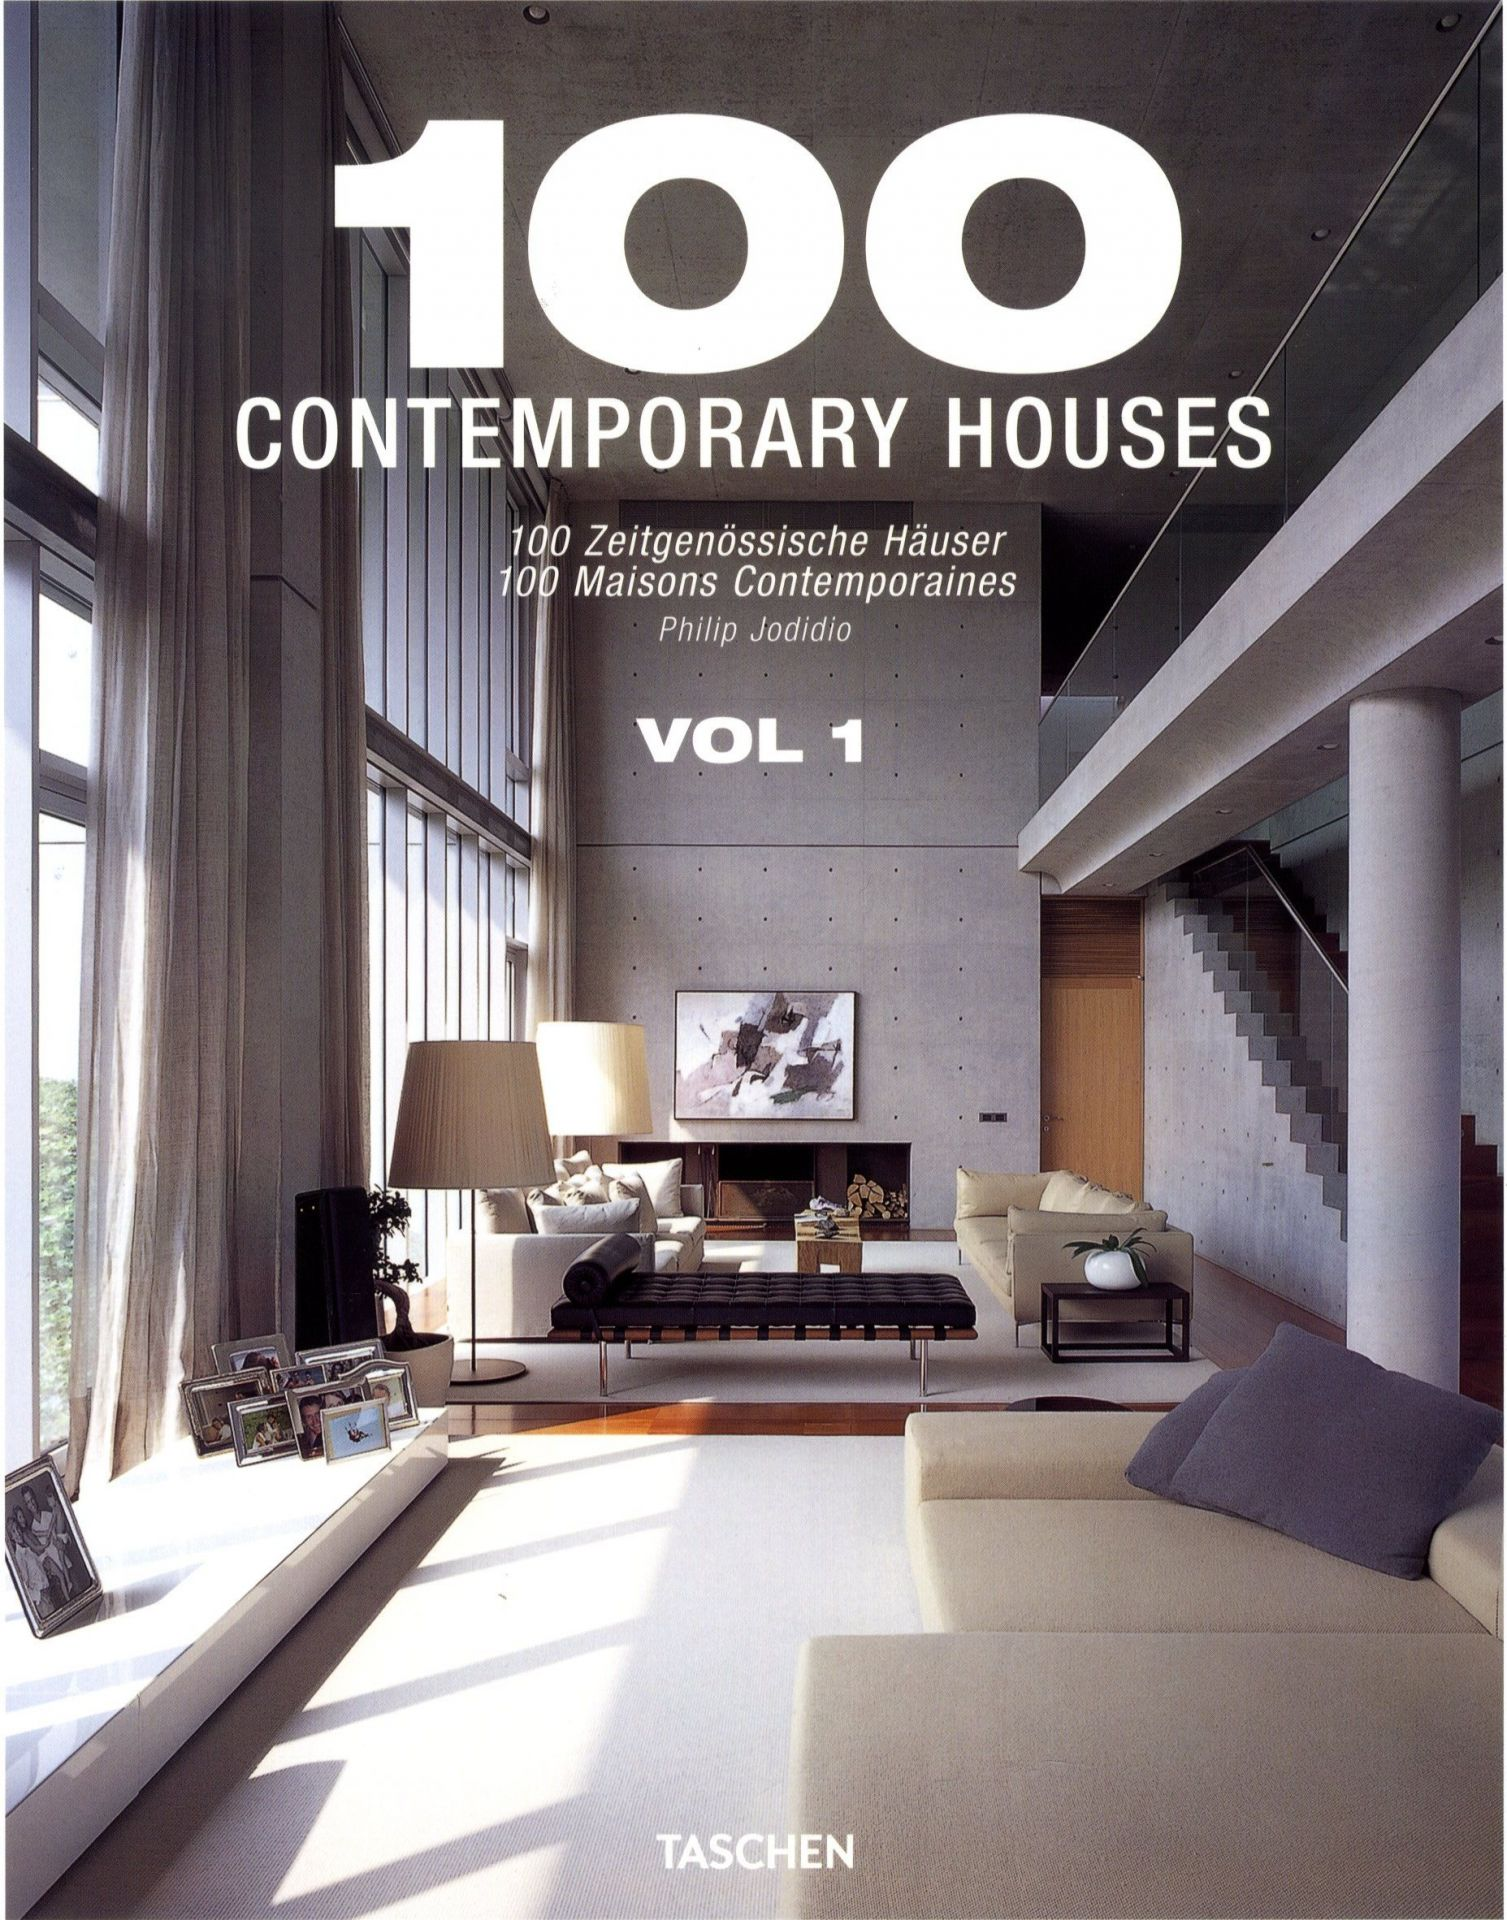 ALONI featured in TASCHEN's latest edition on Contemporary Architecture